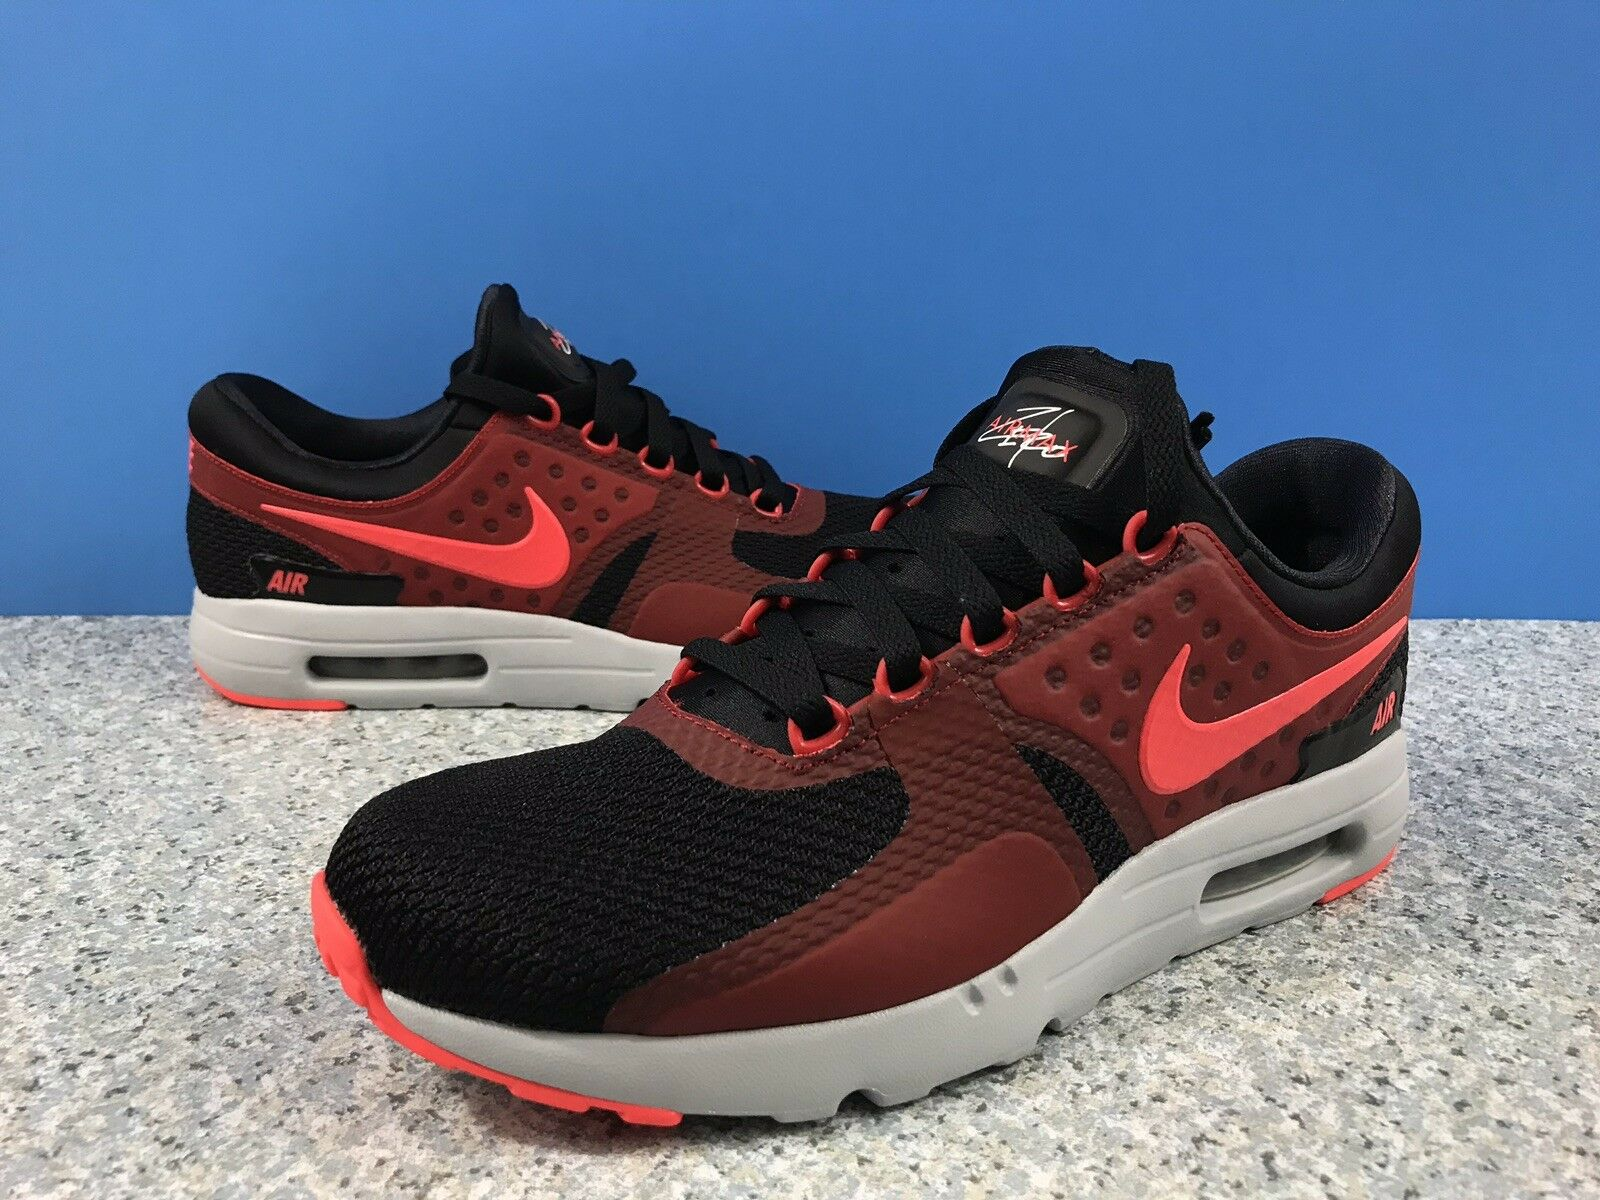 Nike Air Max Zero Black Bright Crimson Red Grey Sz 9.5 876070-007